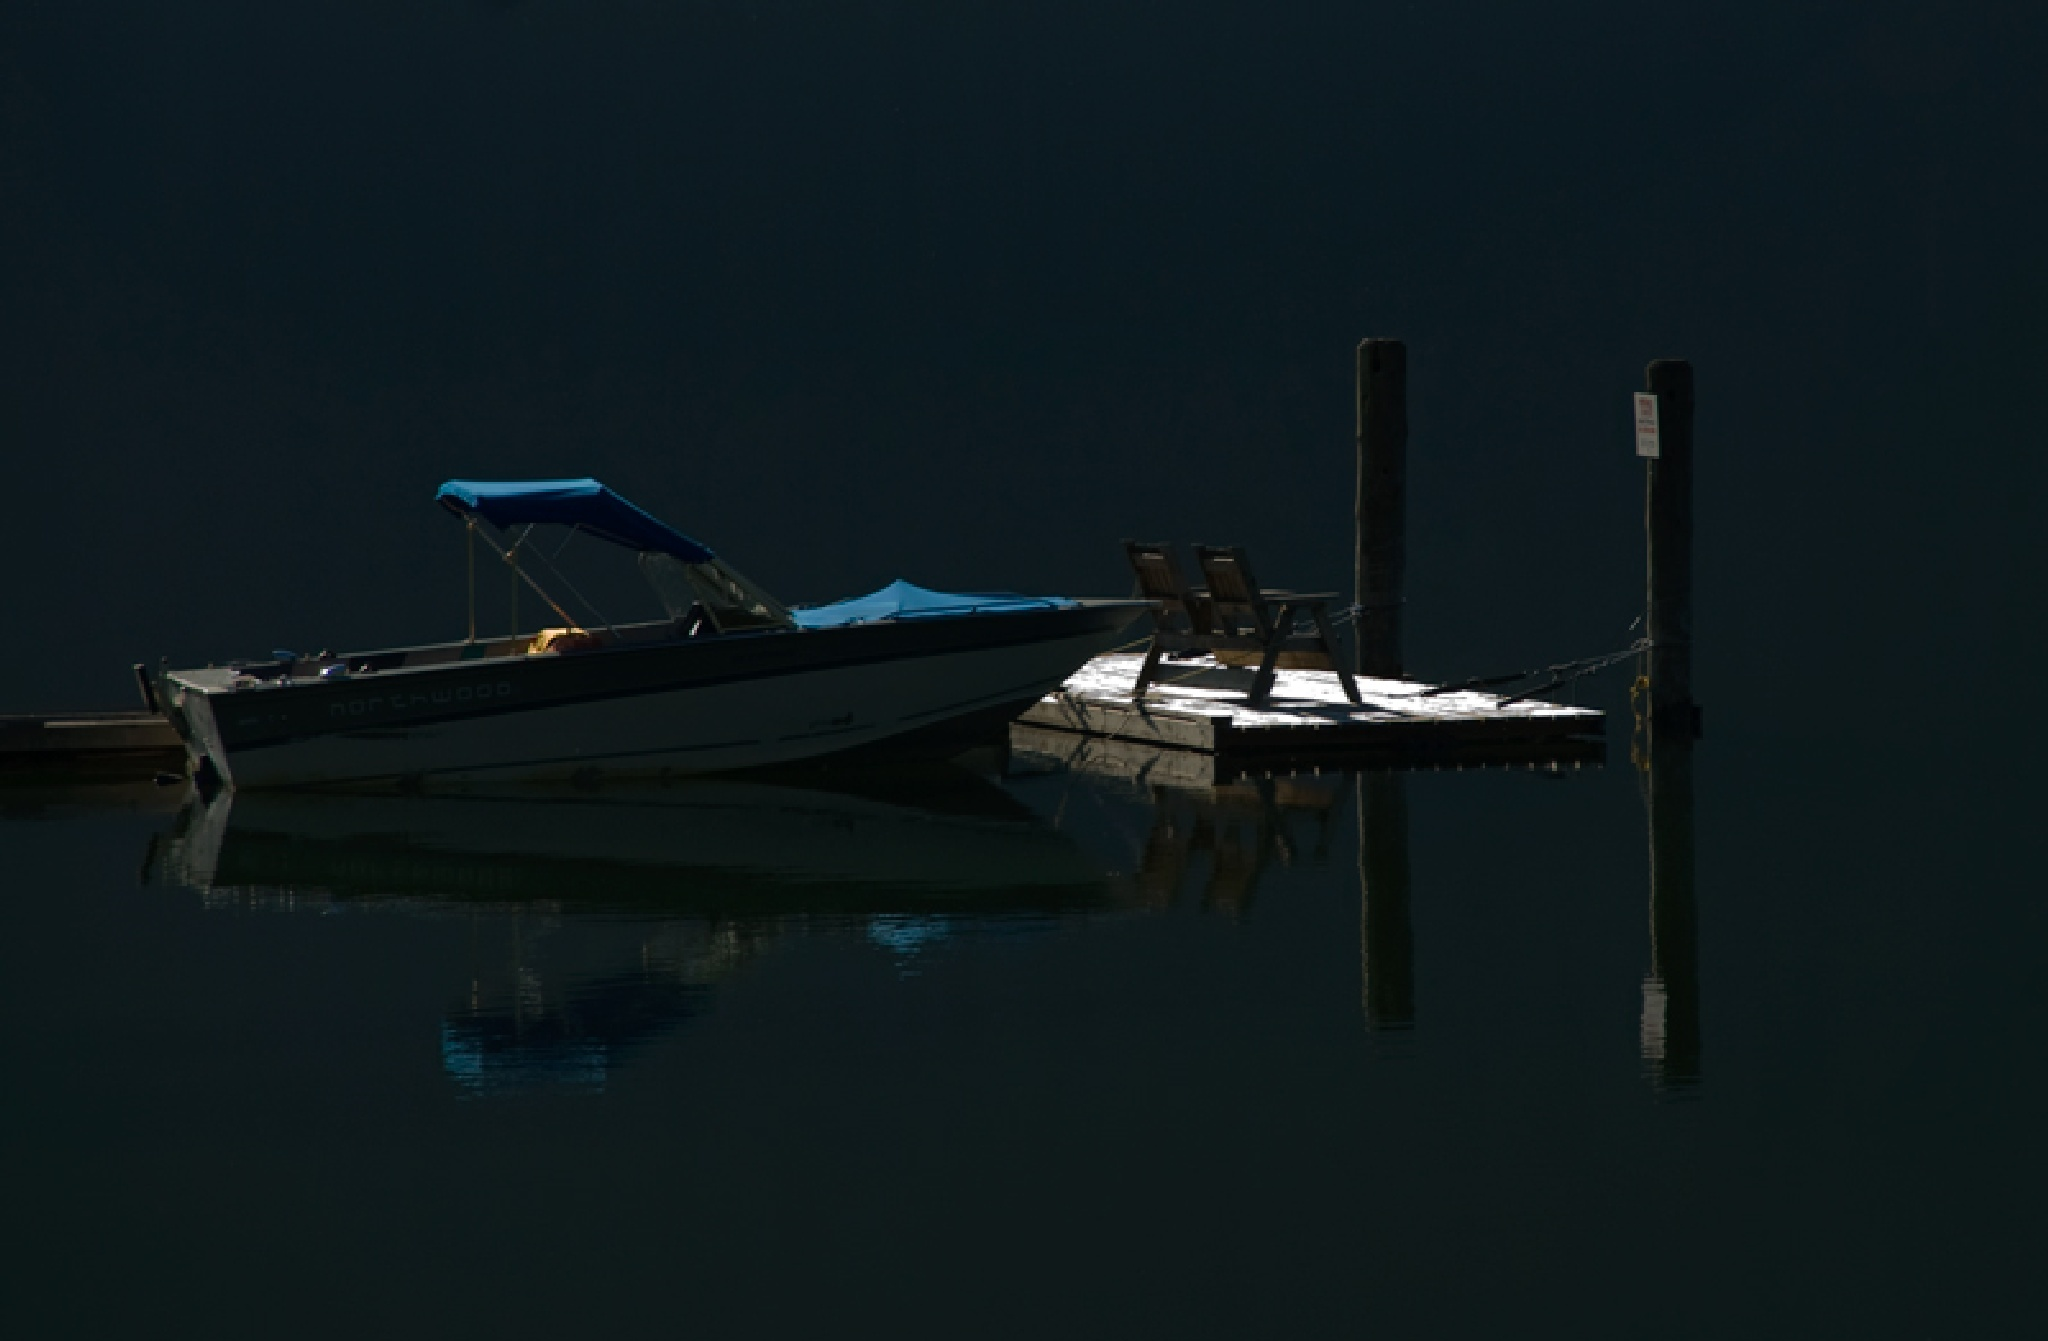 Moored by MadeleineGuenette